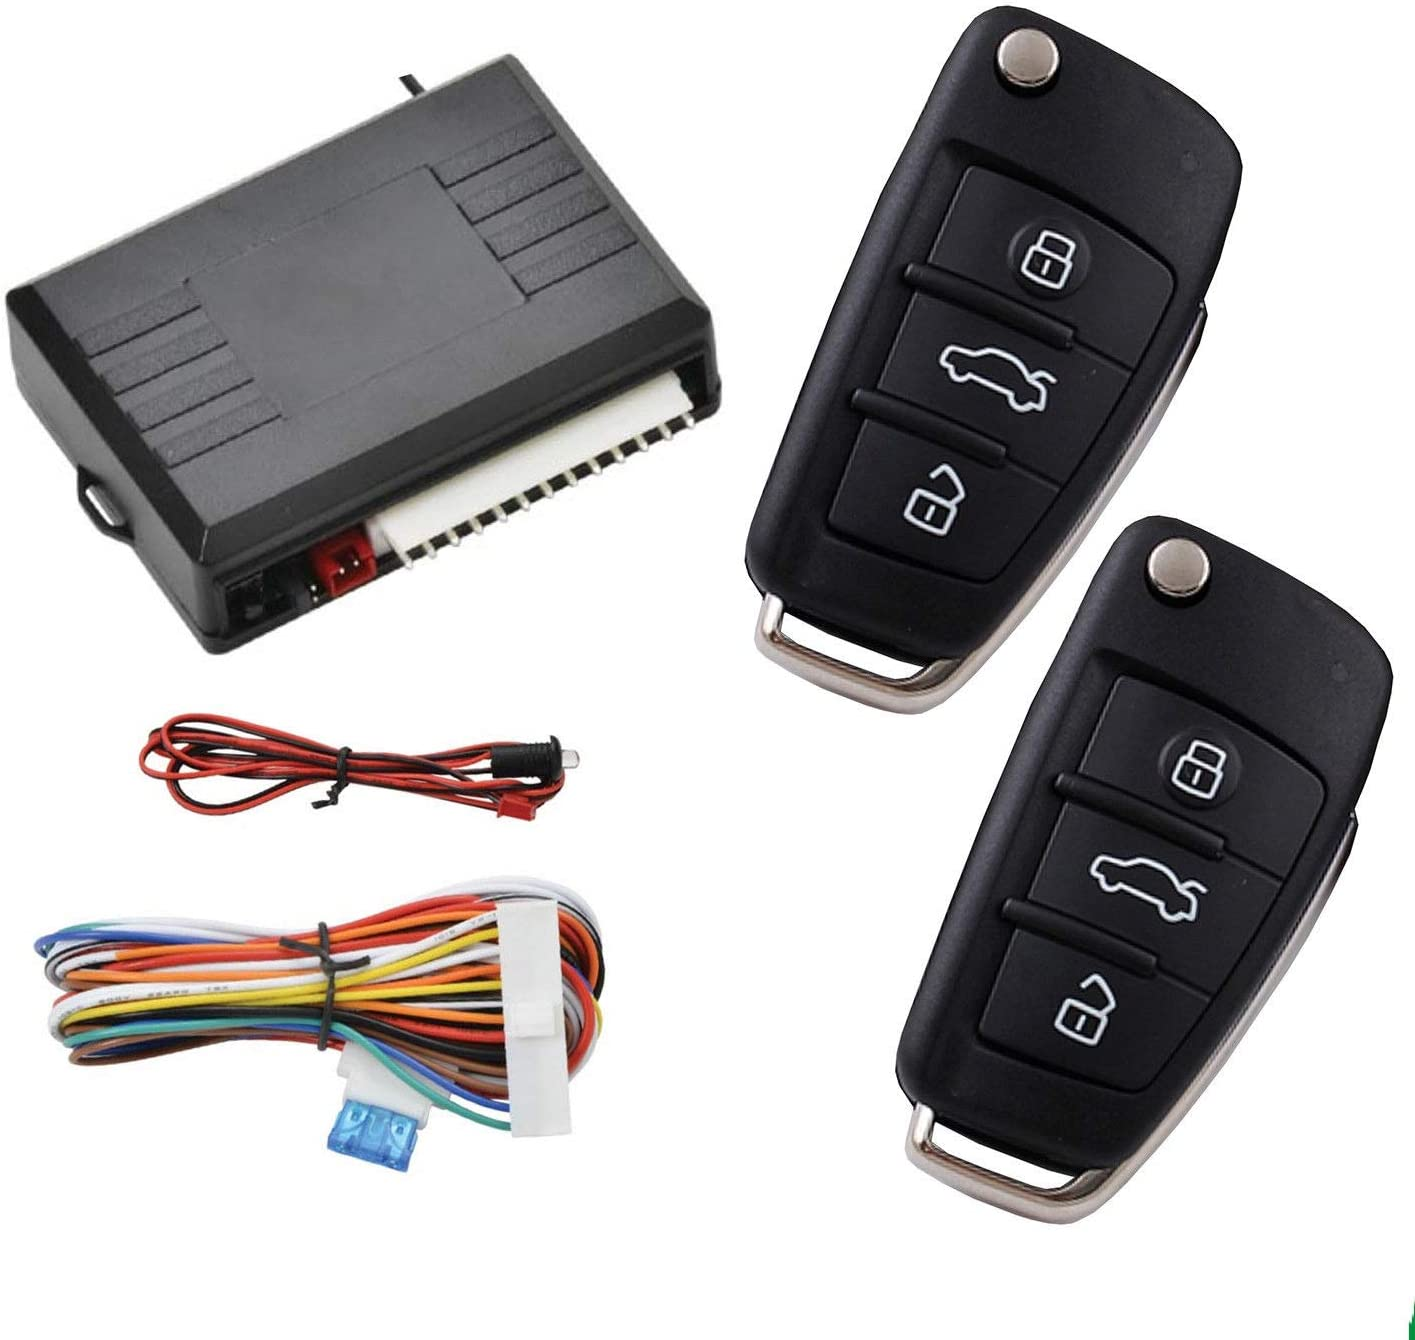 Contorl Box MASO Car Central Lock Universal Auto Remote Central Kit Vehicle Door Lock with Shock Sensor 2 Replacement Remote Contorl for Car Central Door Lock